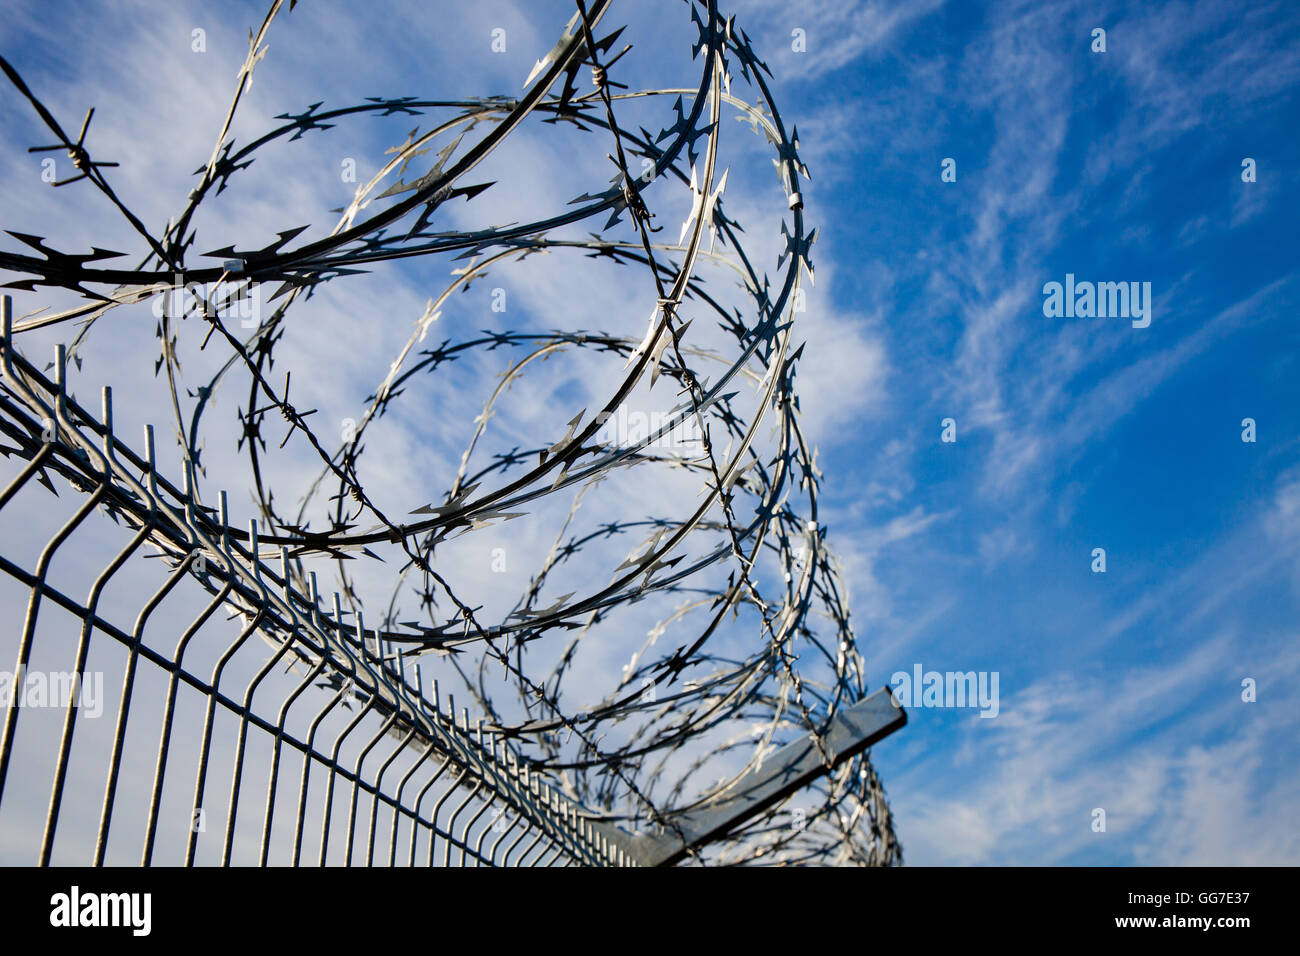 Barbed wire fence with blue skies and clouds in the background - Stock Image